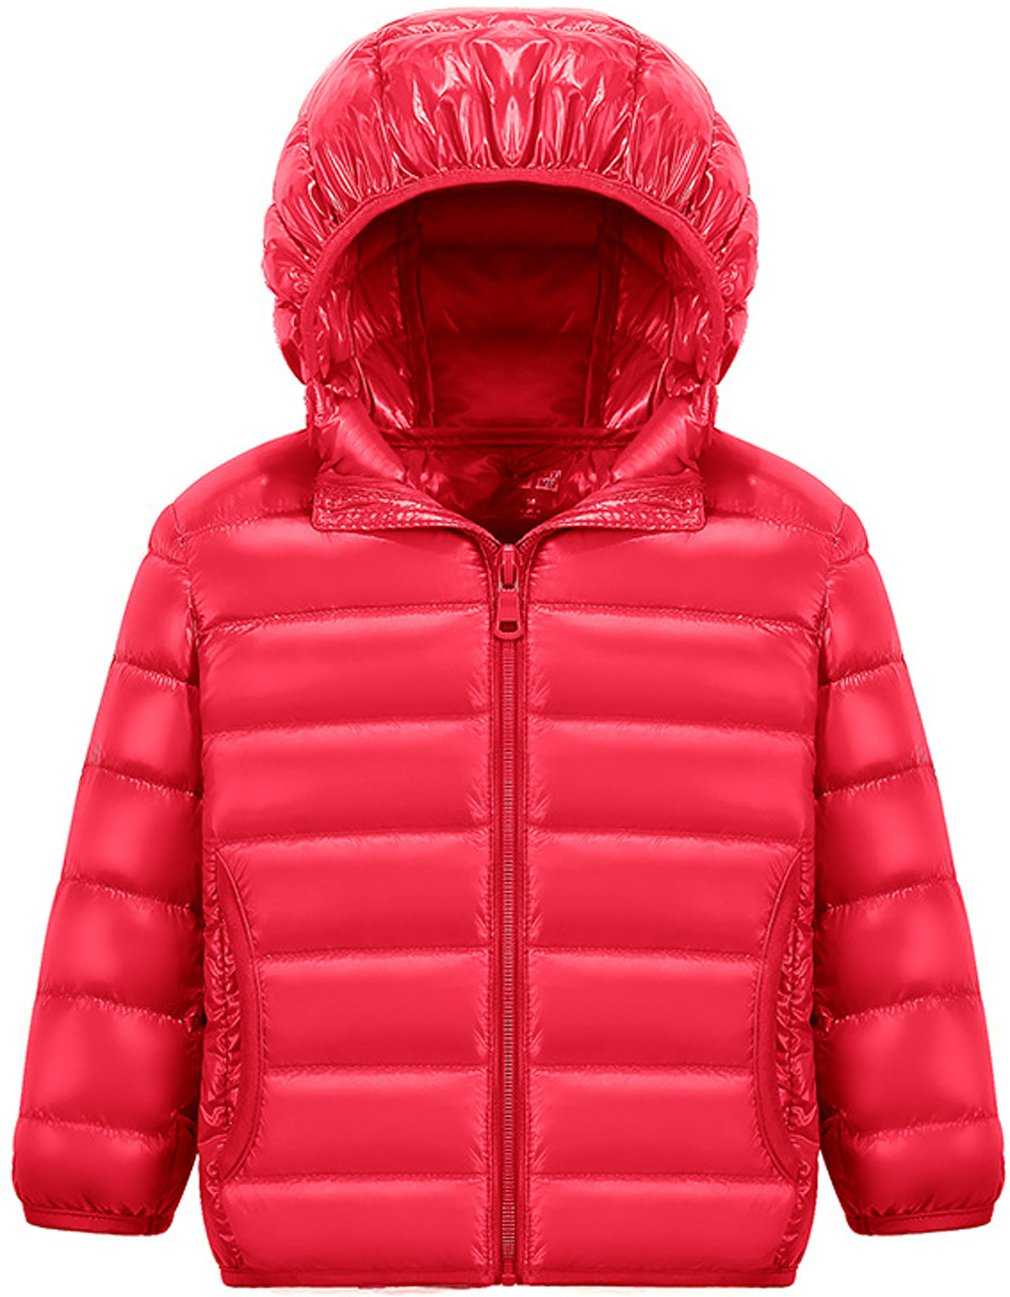 Wenseny Boys Girls Coat Lightweight Winter Down Jacket Hoodie Puffer Outwear ace001